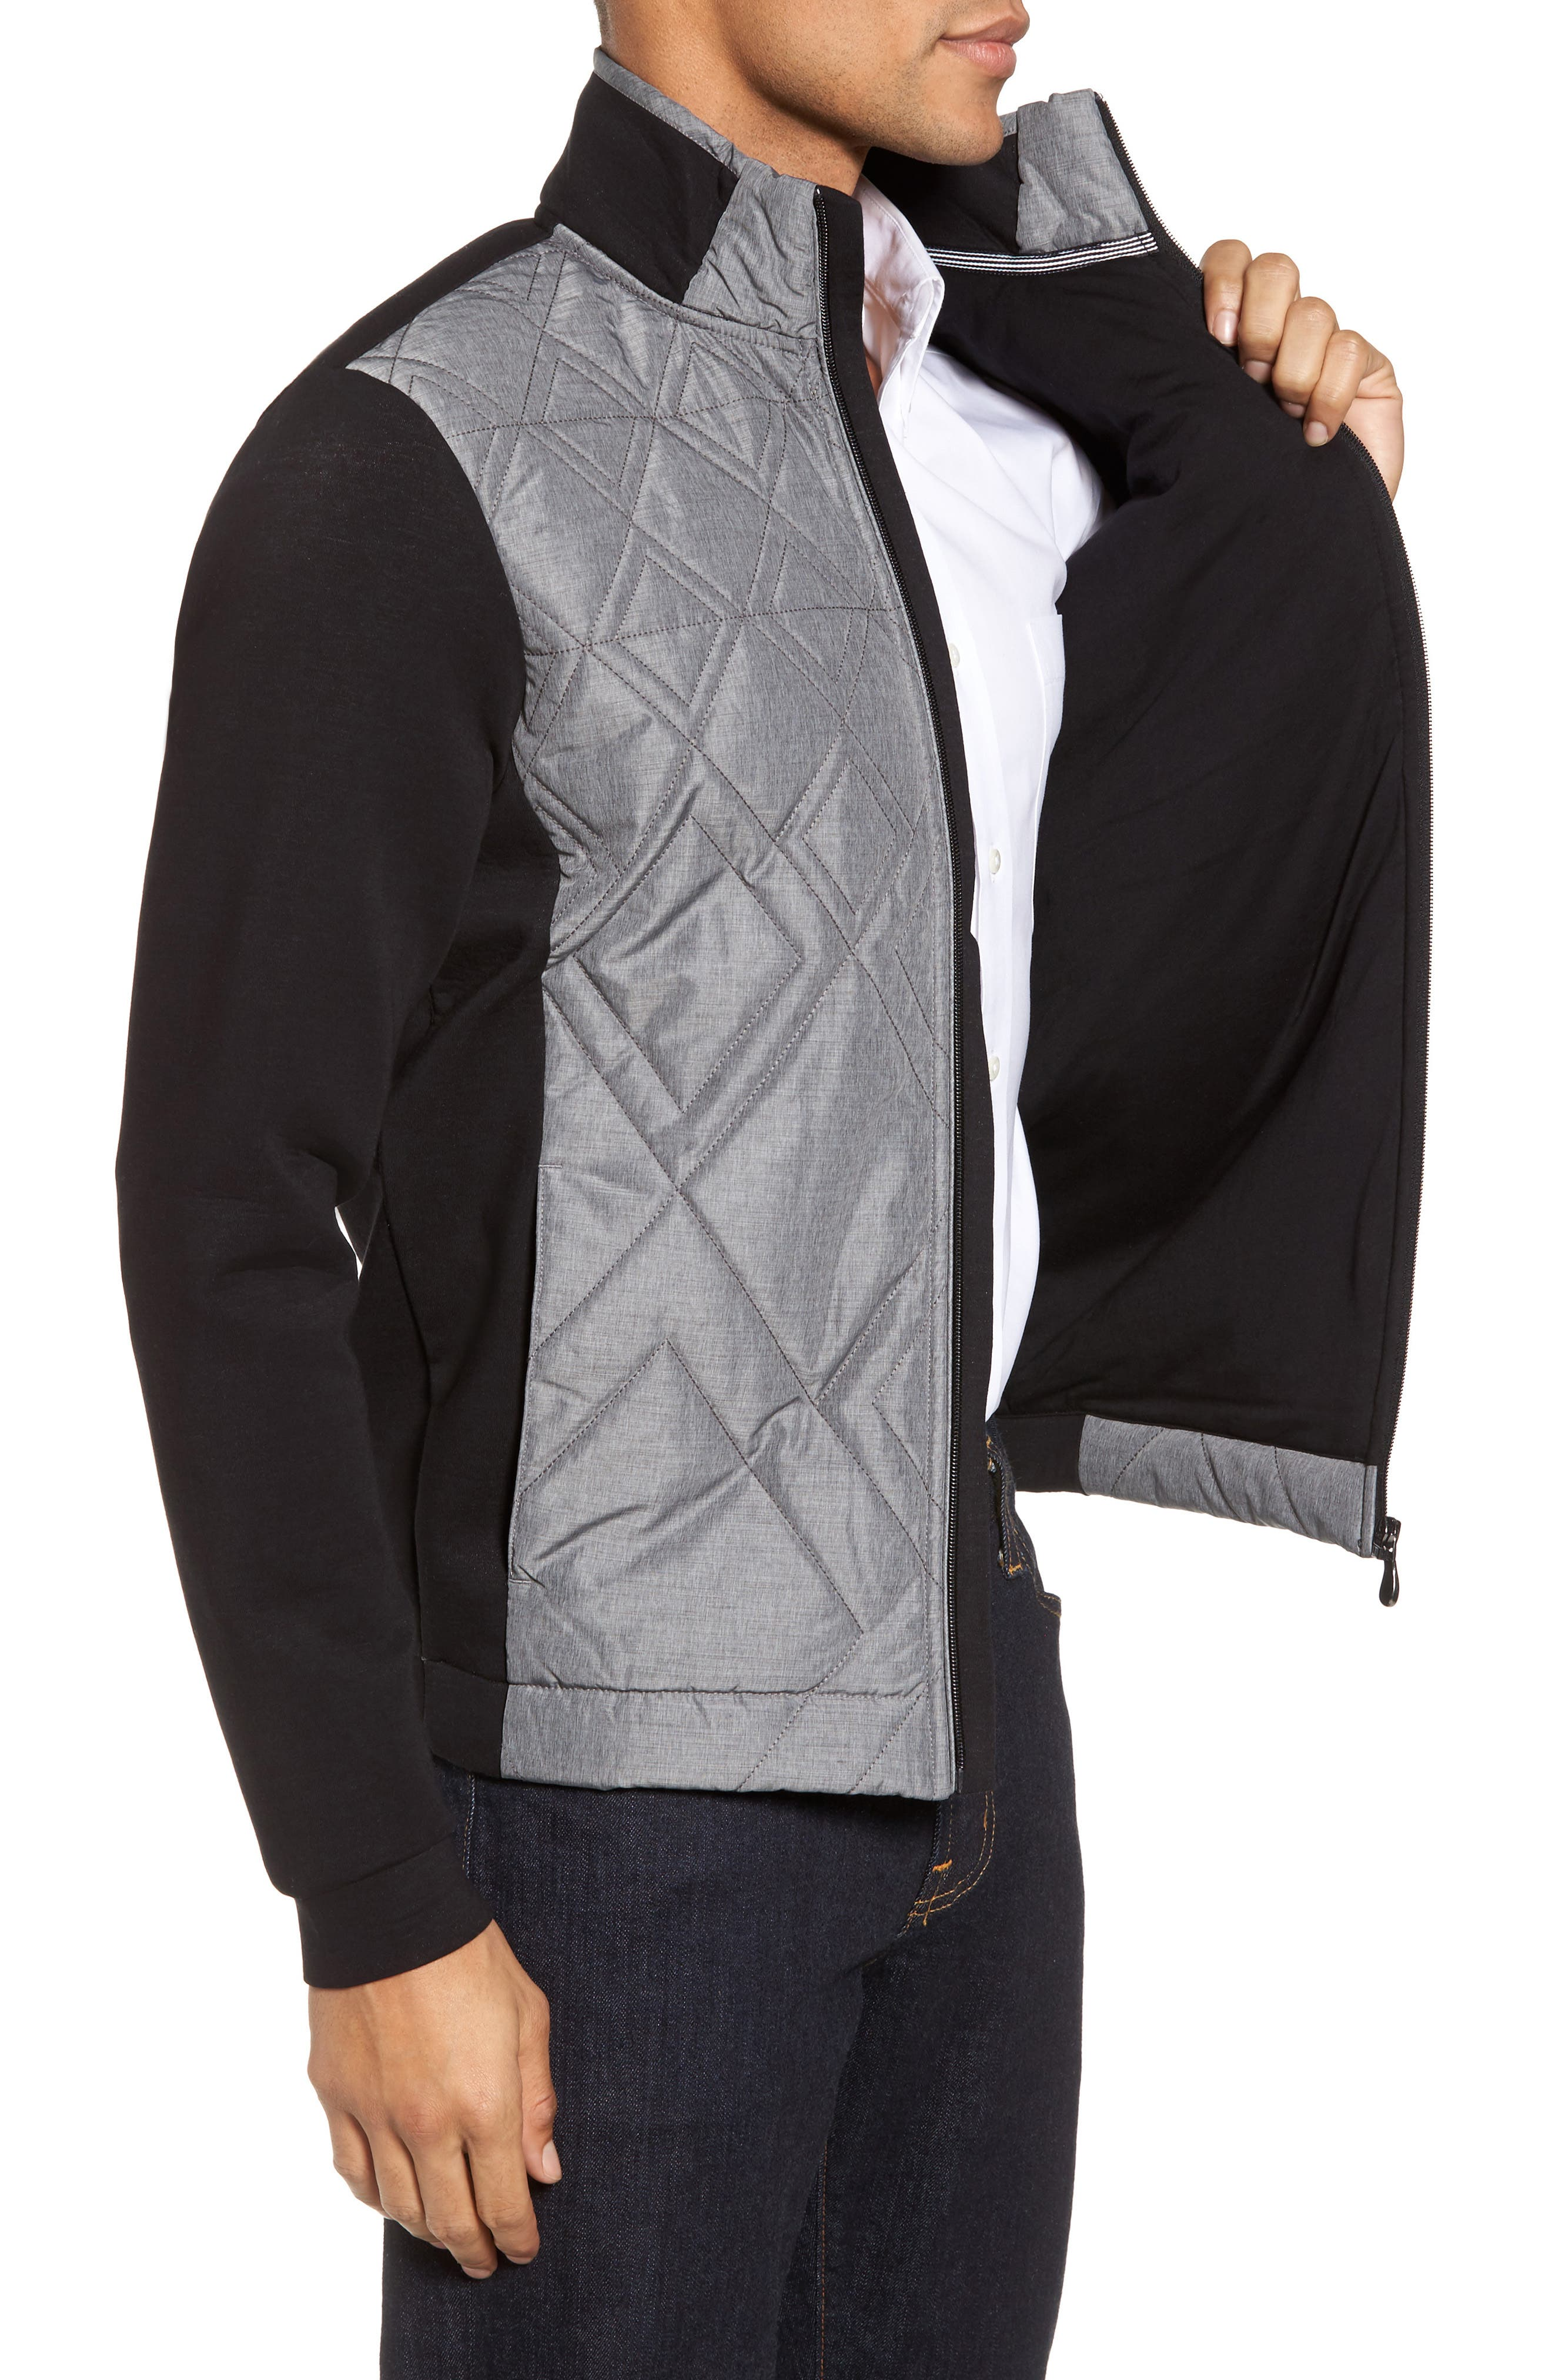 C-Pizzoli Quilted Jacket,                             Alternate thumbnail 3, color,                             001